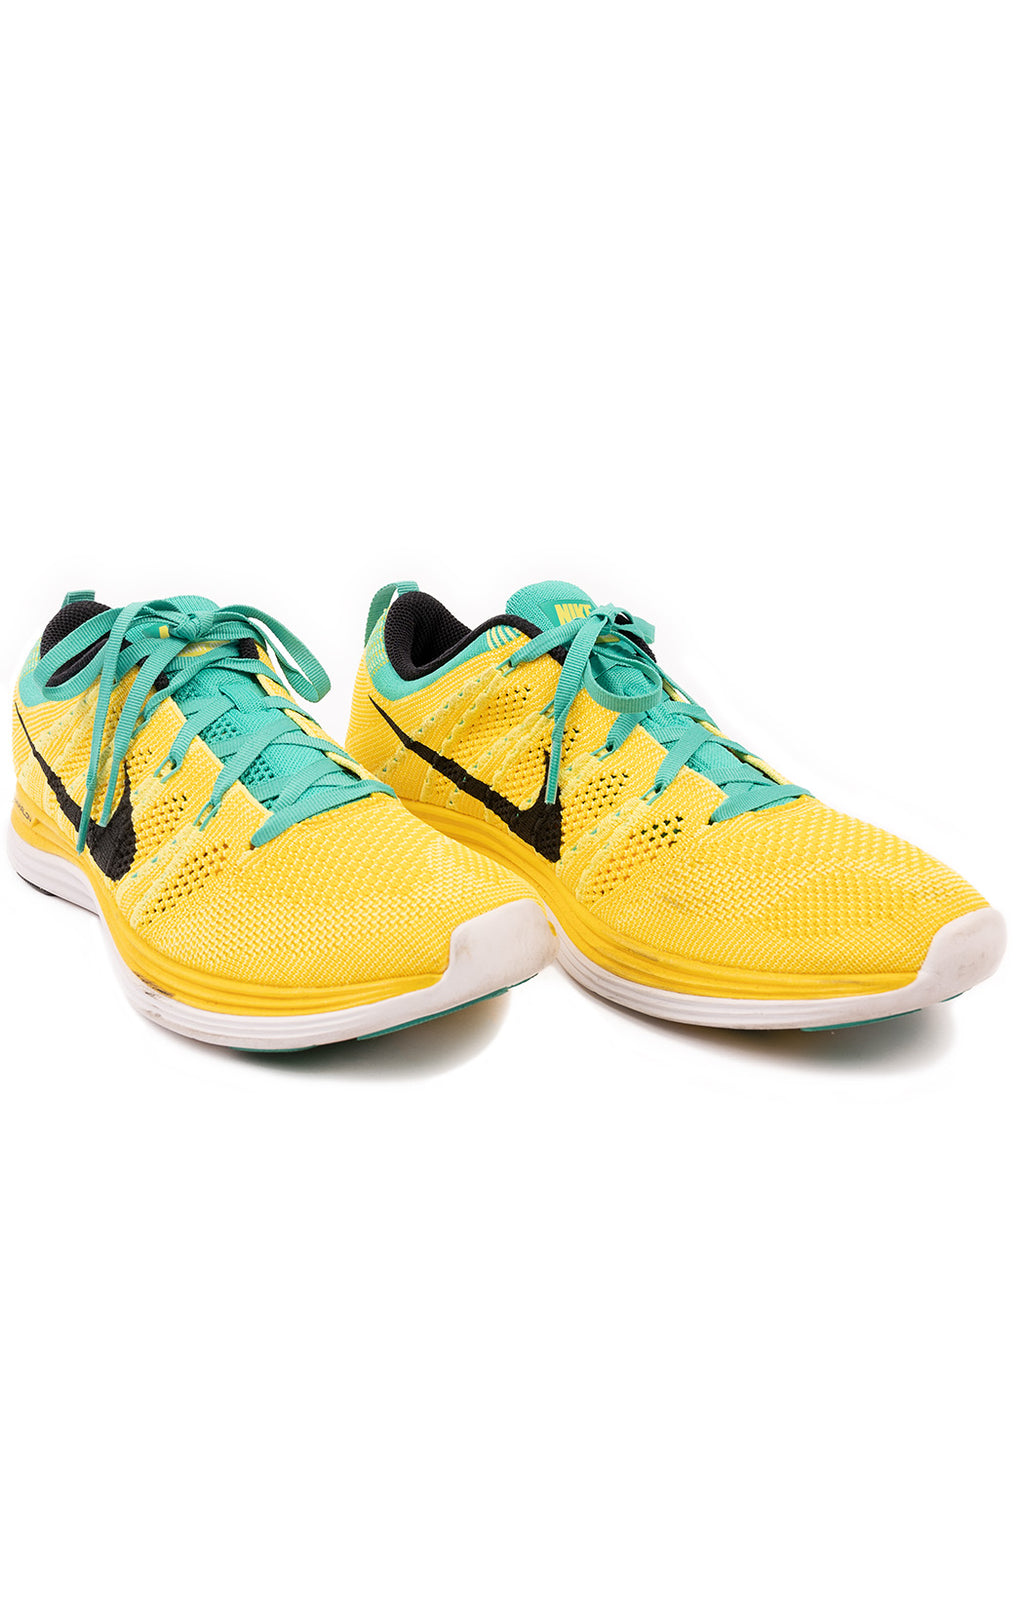 NIKE Yellow and green fabric tennis shoe